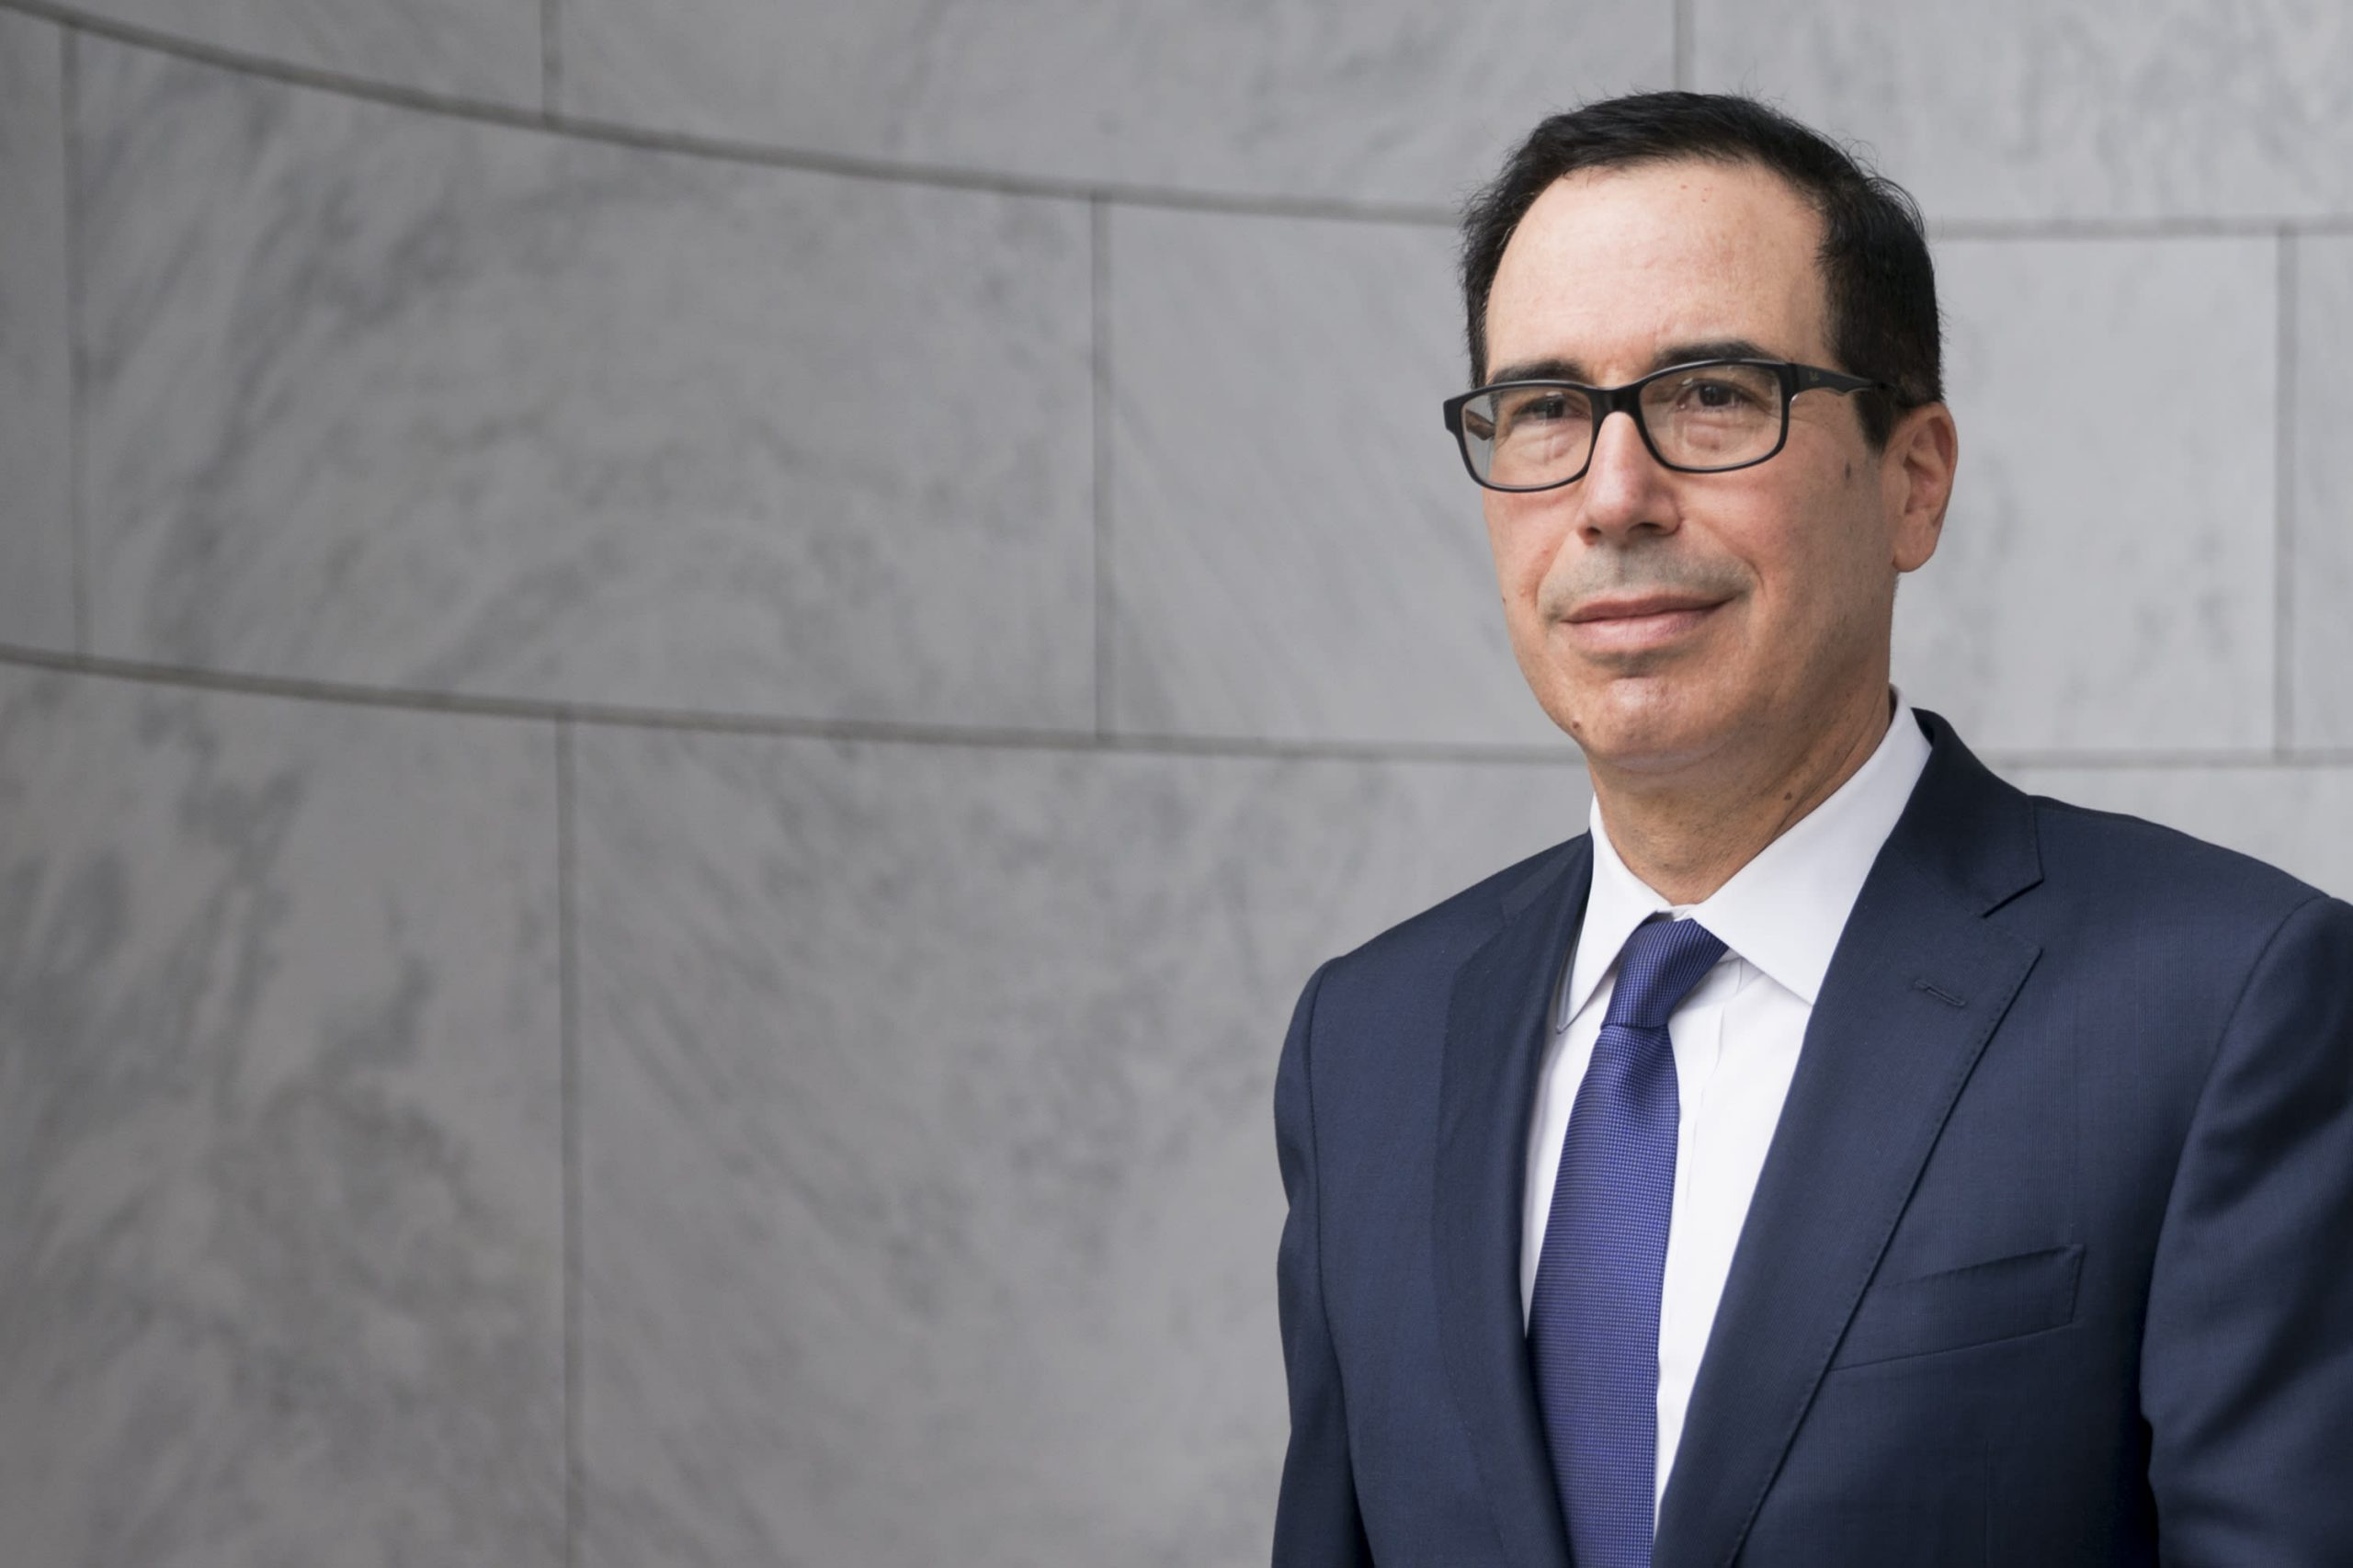 Treasury Secretary Mnuchin is 'confident' trade deal will be signed at beginning of January